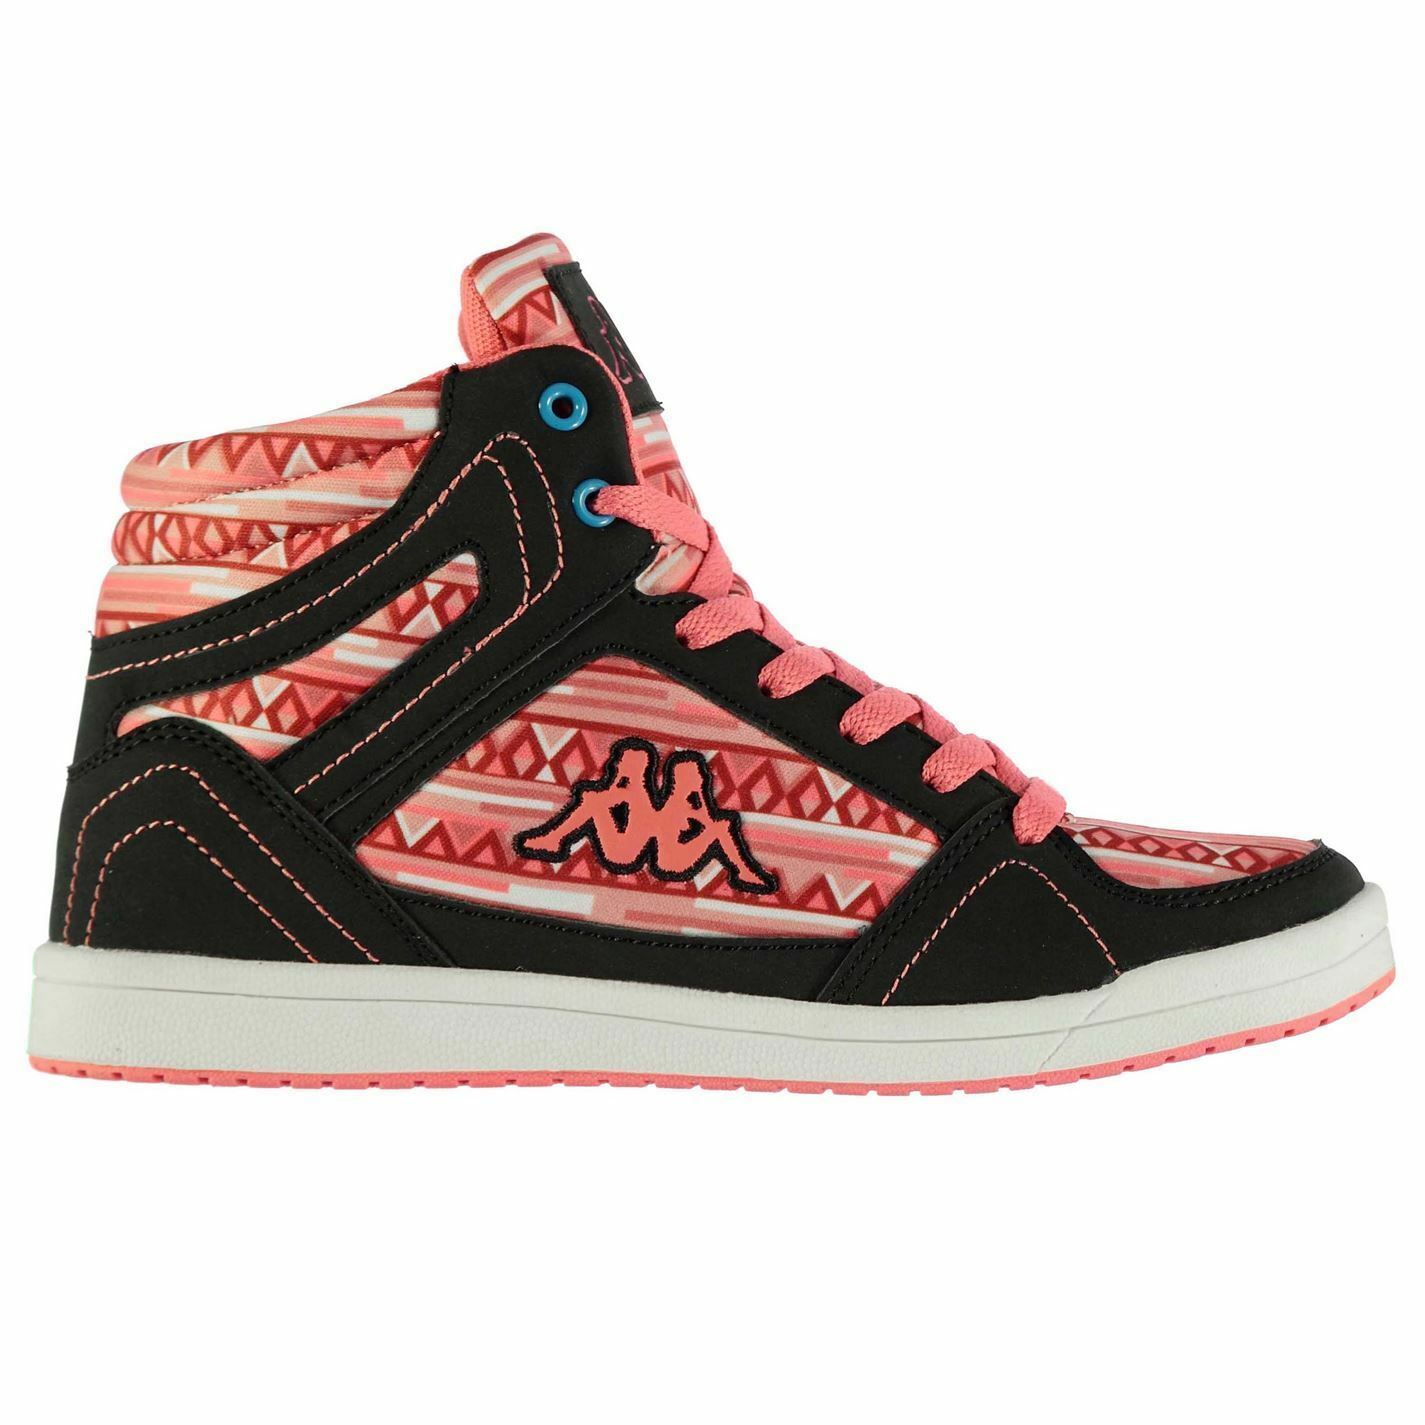 Kappa Coleos 7 Hi Top Trainers Damenschuhe Pink/Navy Sports Trainers Sneakers